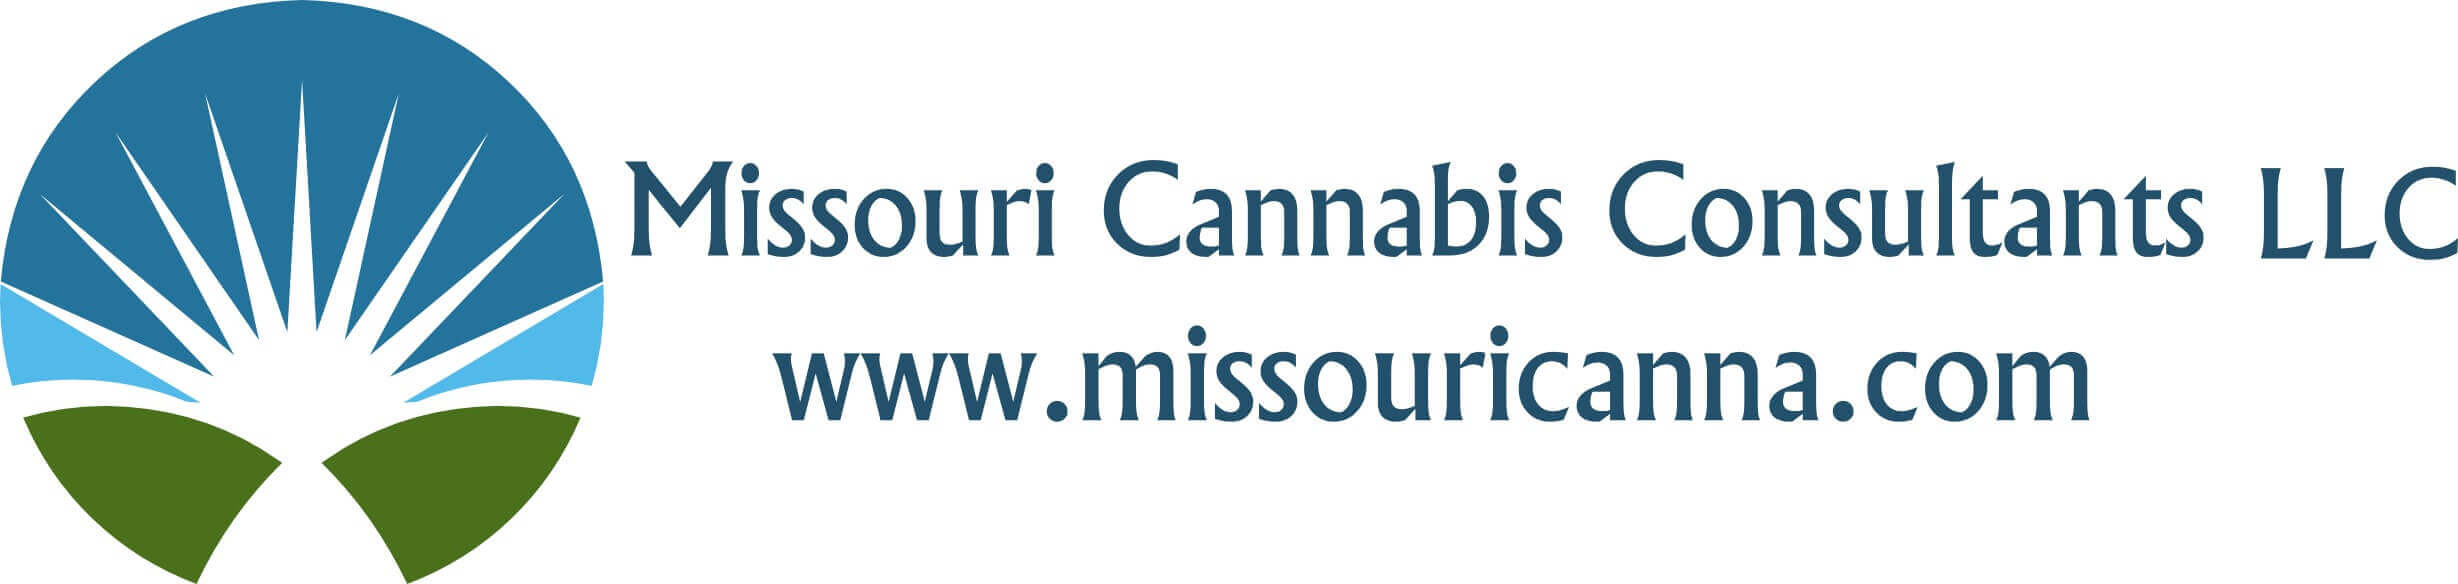 Missouri Cannabis Consultants Logo